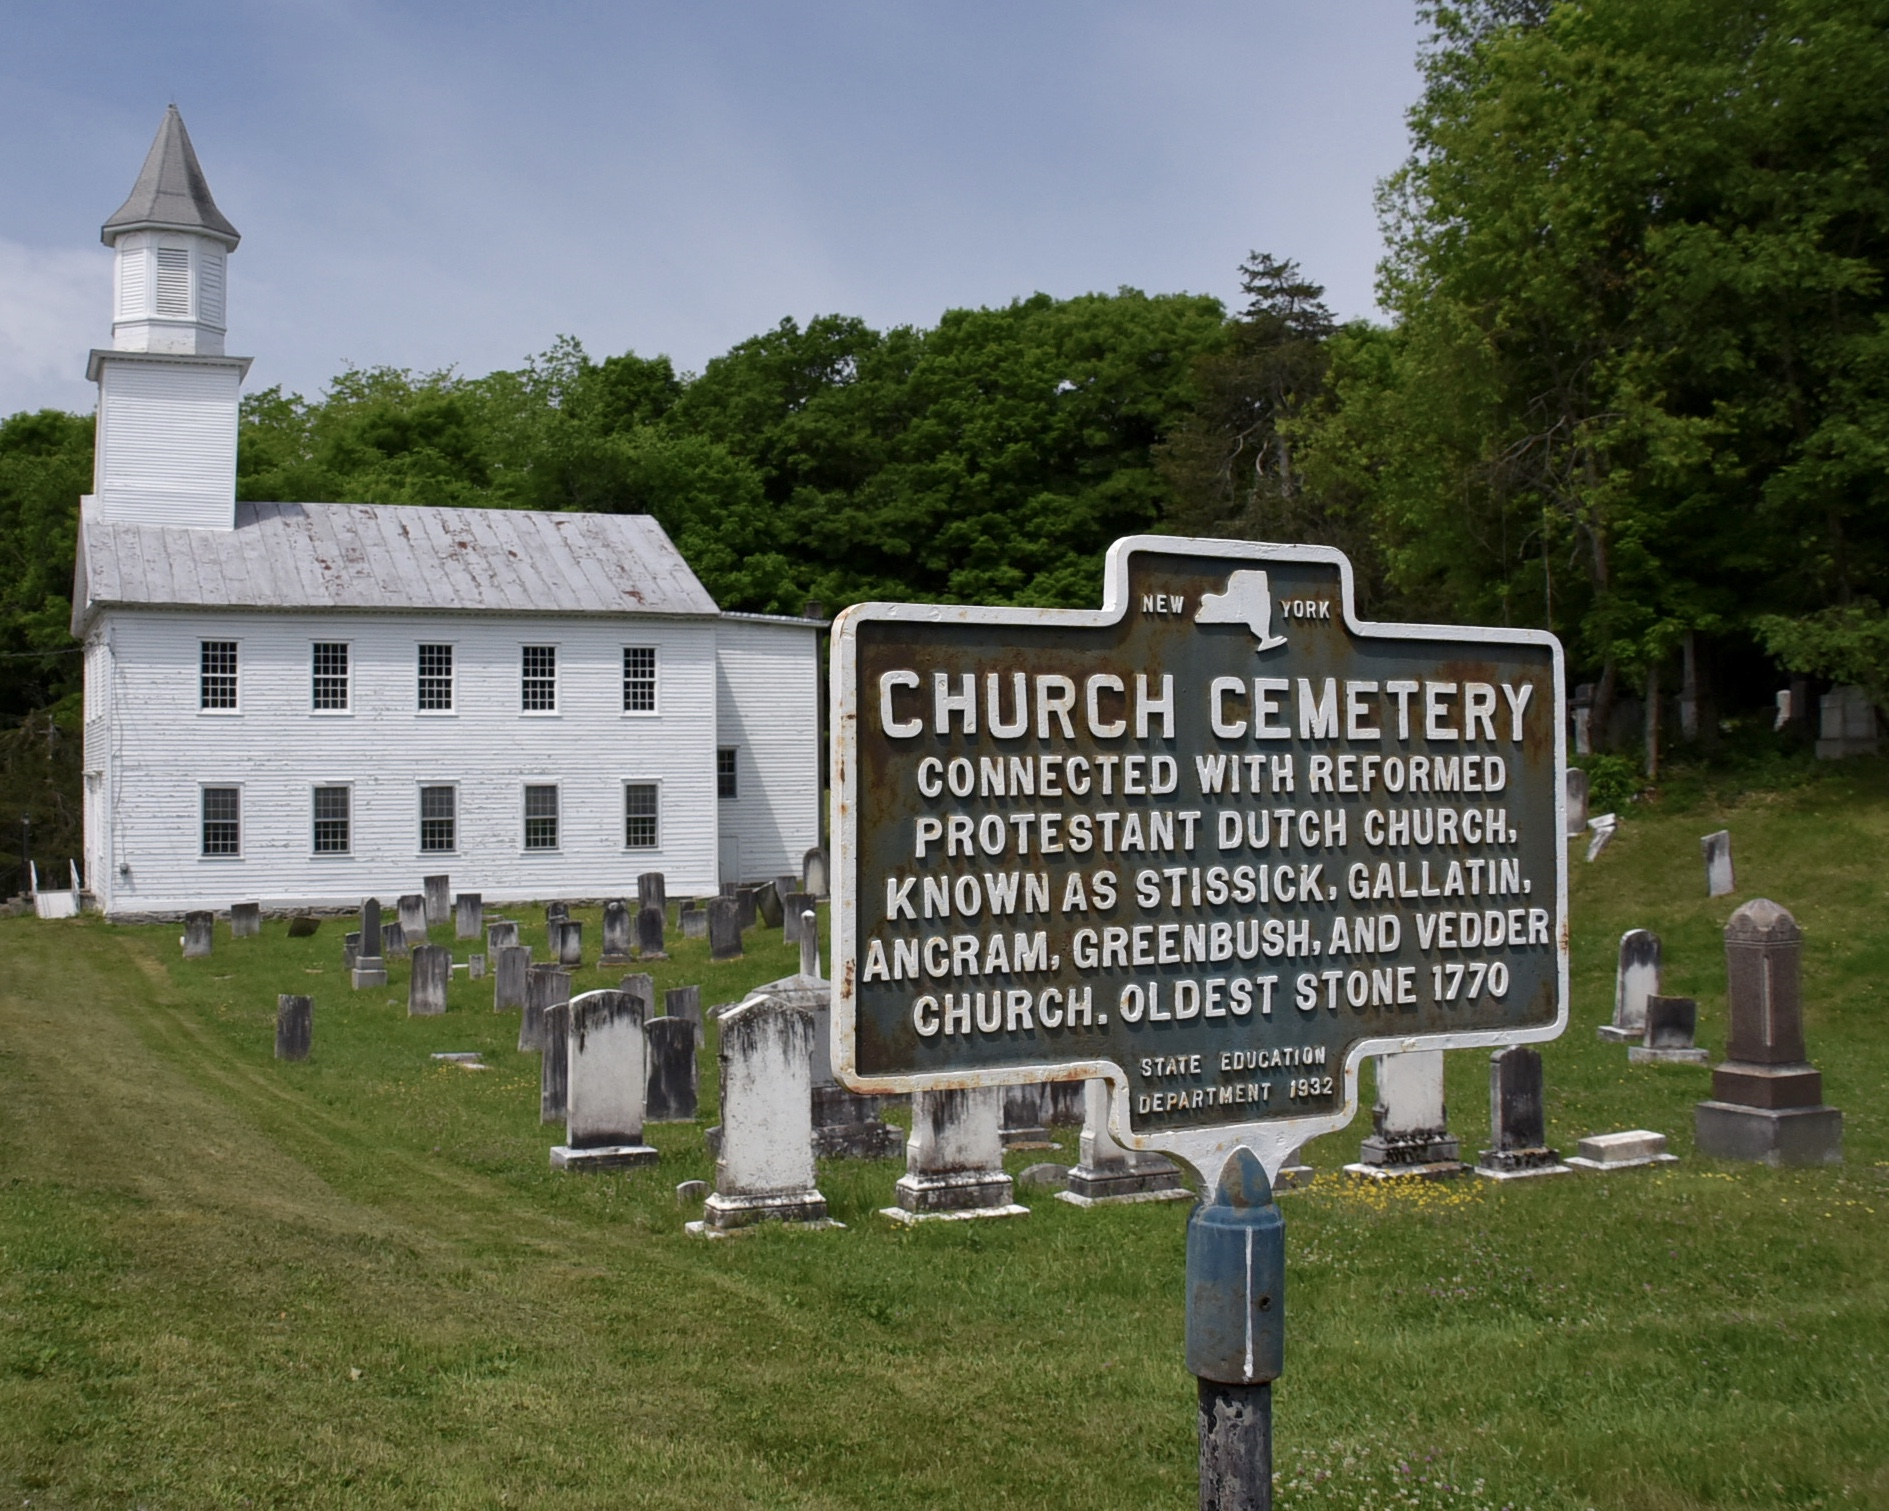 Gallatin Reformed Church Cemetery in Gallatinville, New York - Find ...